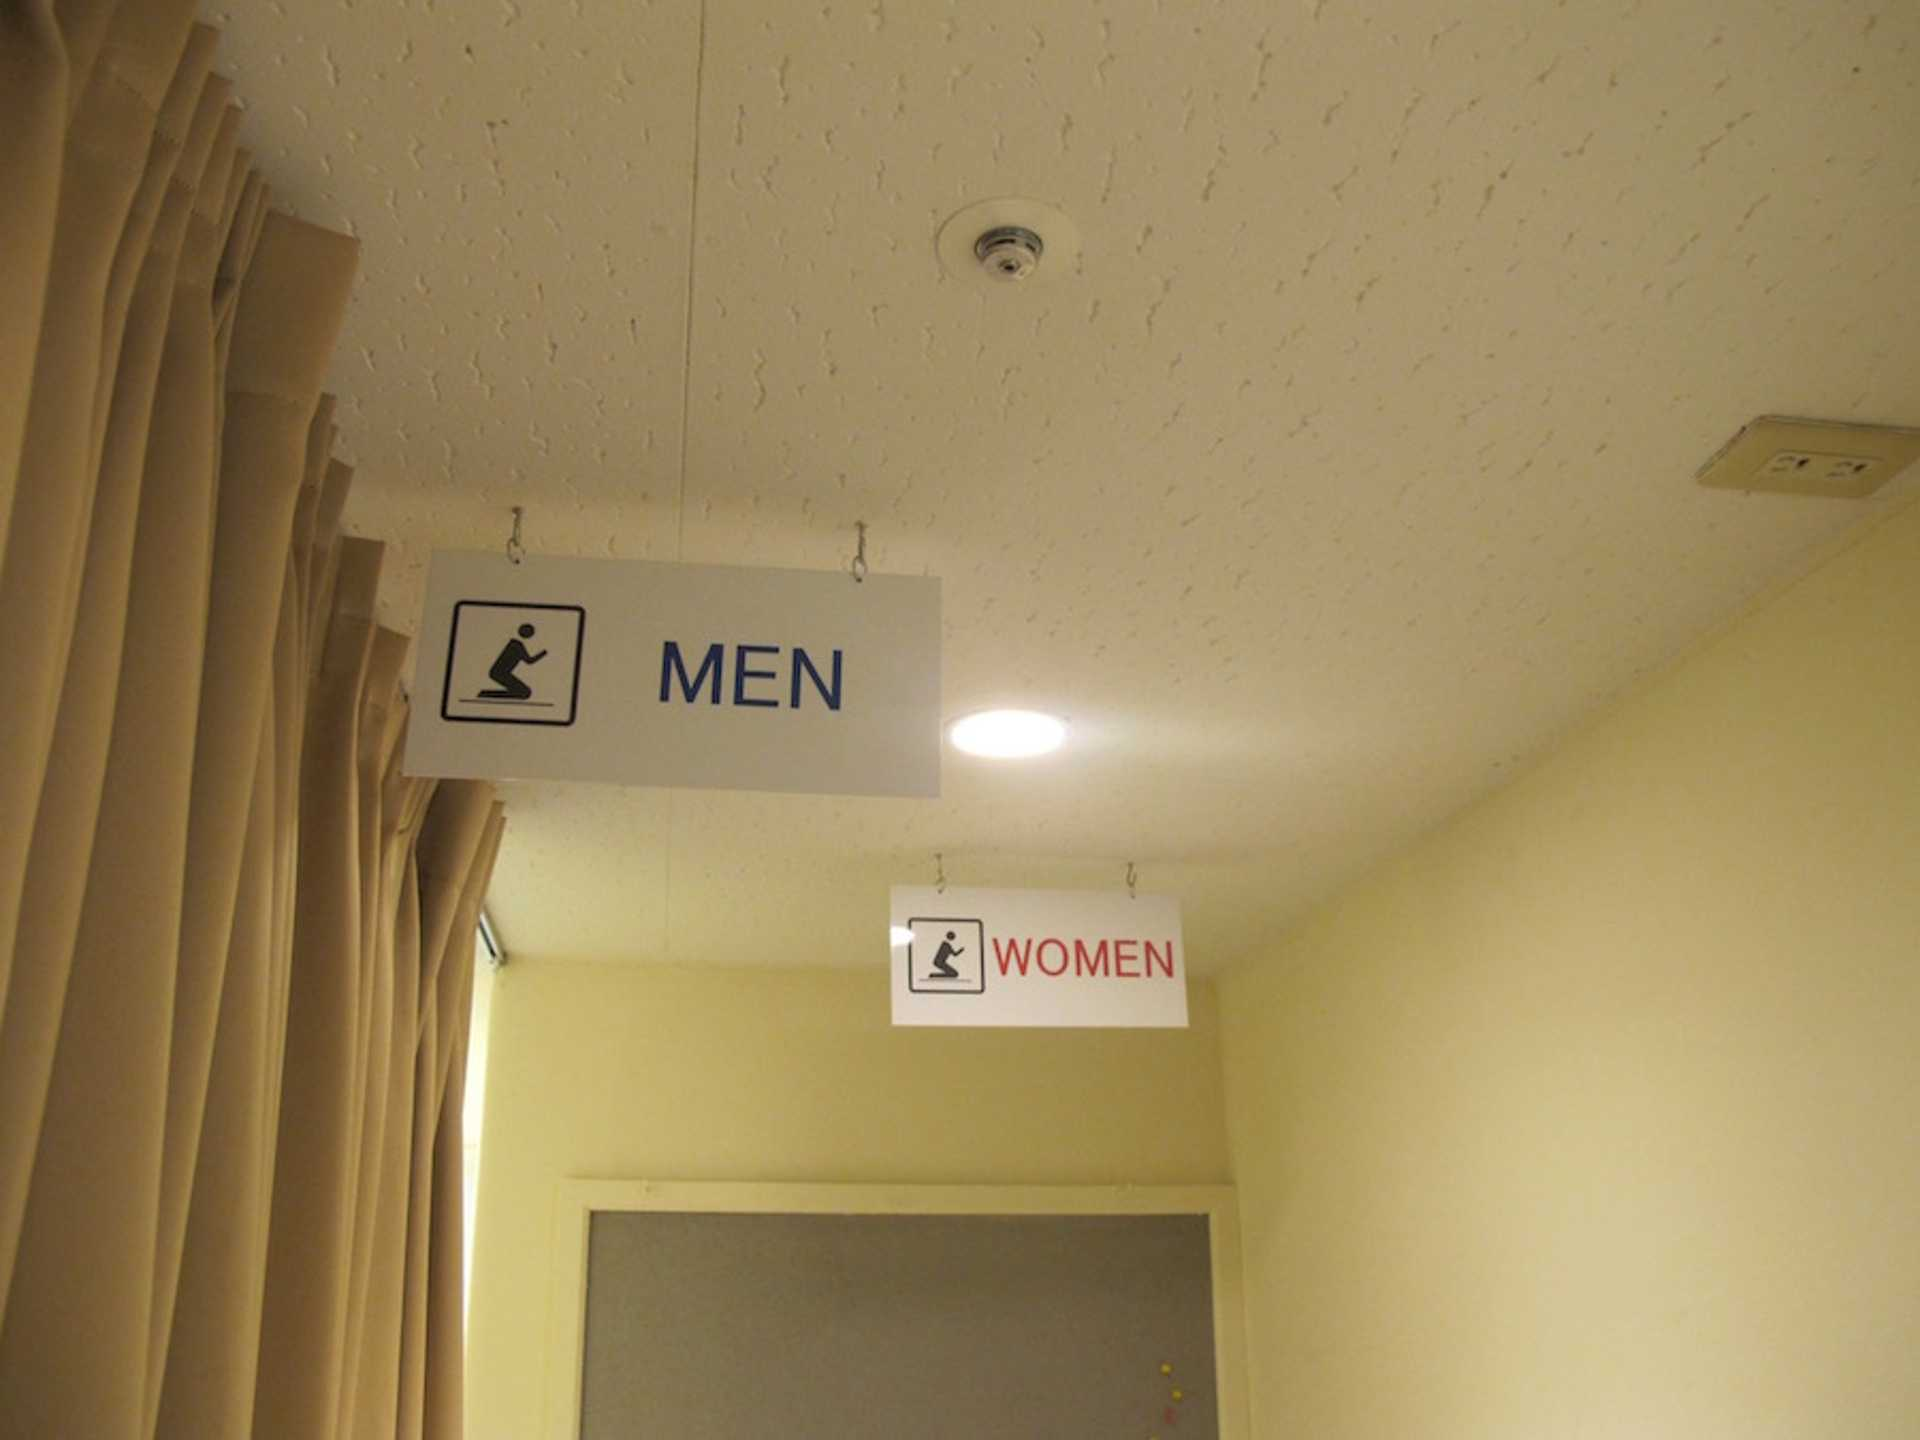 The facility is separated into two areas for each gender, each with its own ablution area.